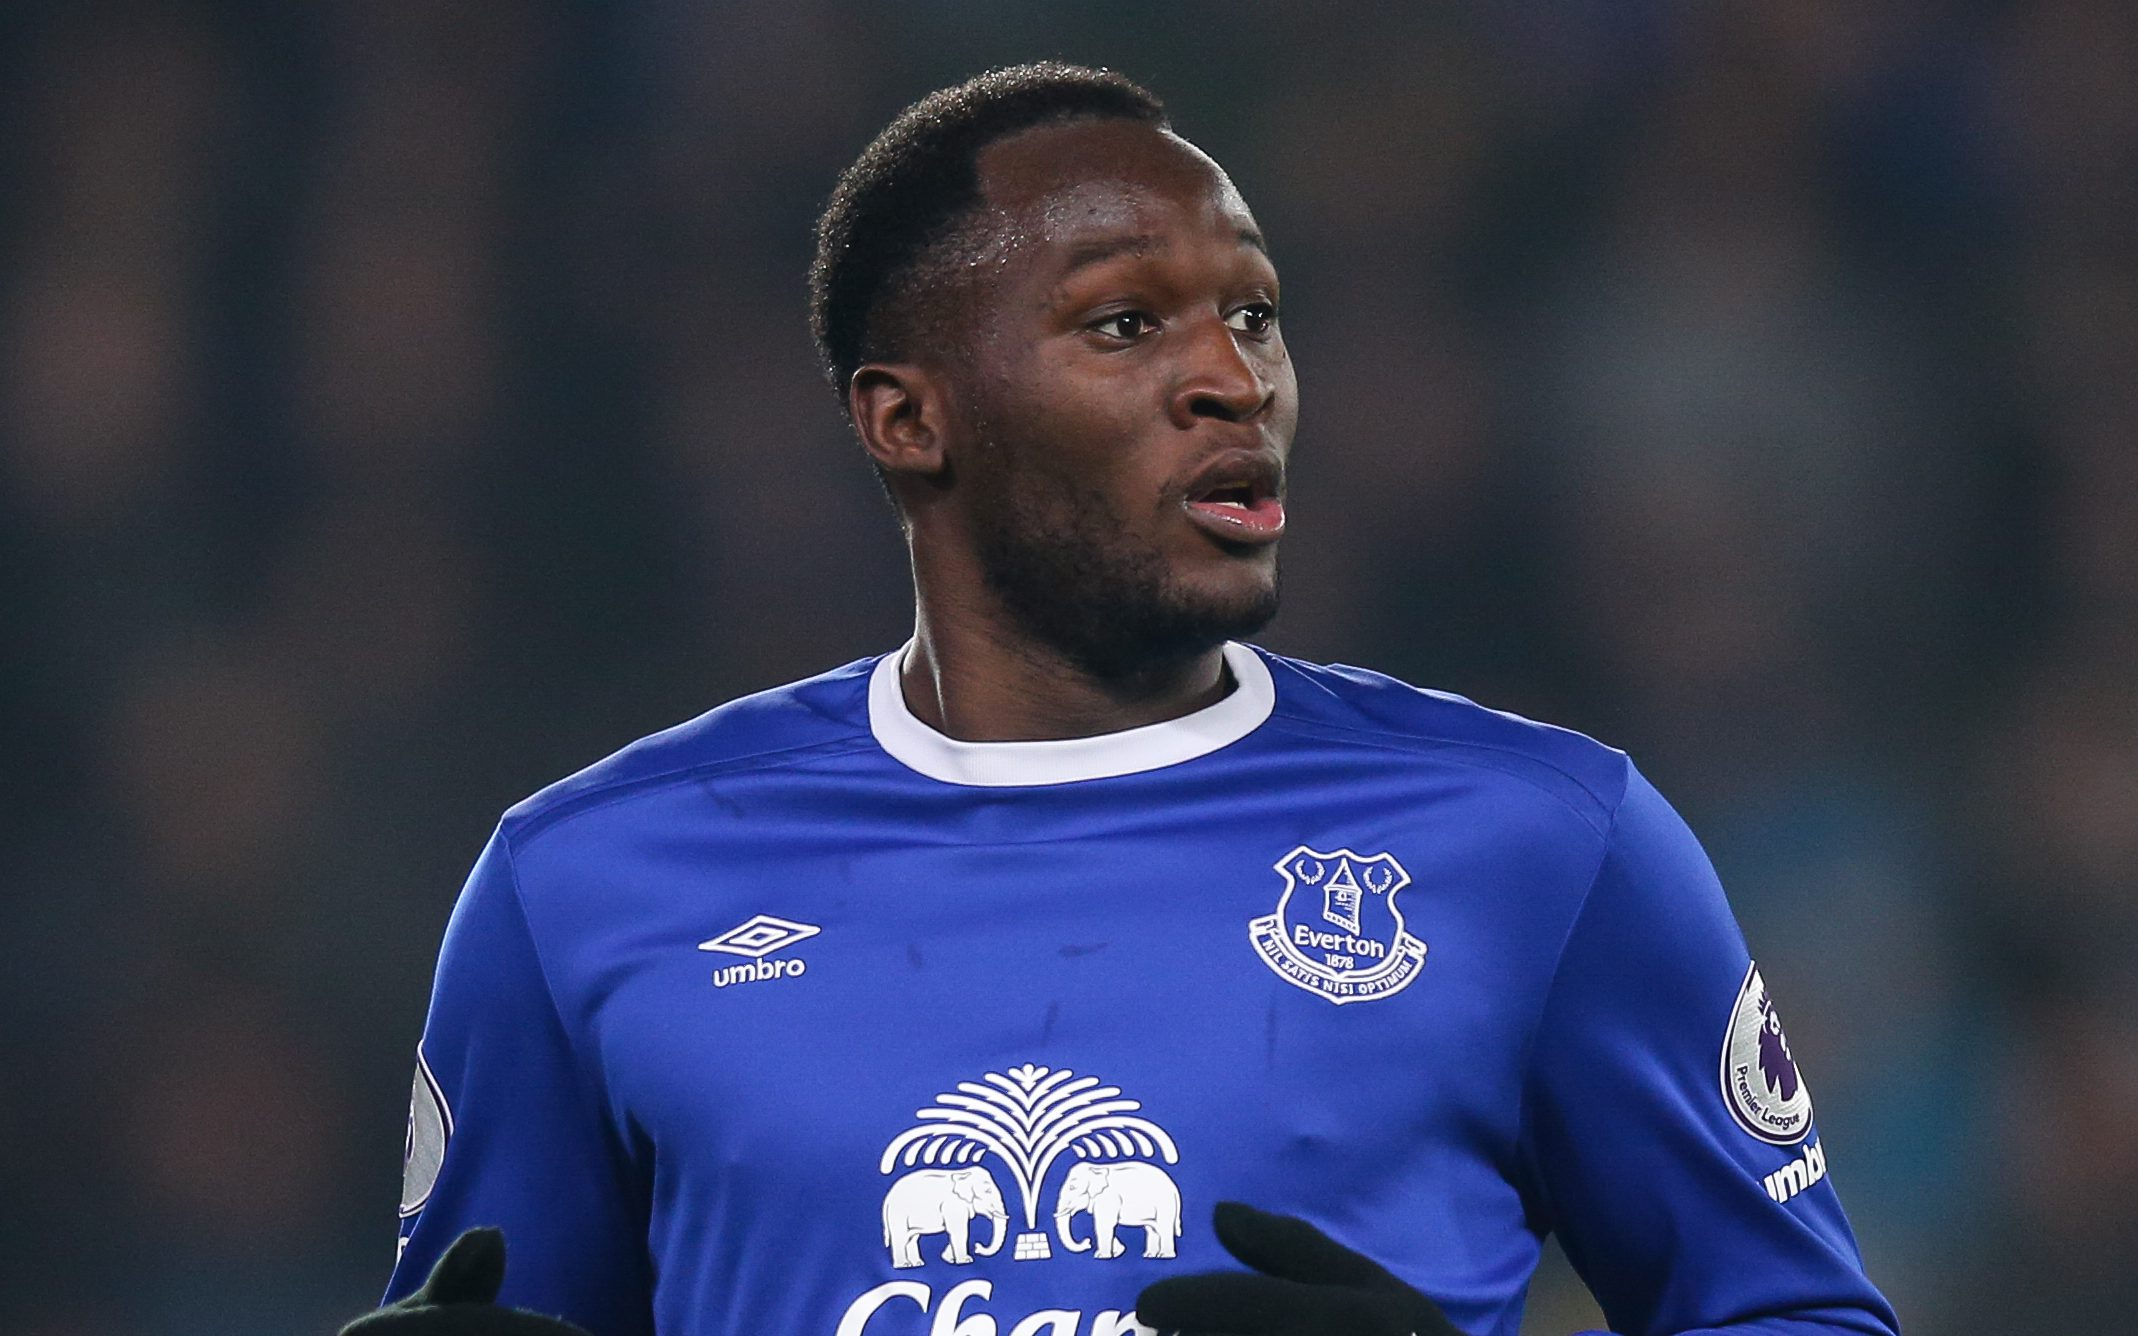 HULL, ENGLAND - DECEMBER 30: Romelu Lukaku of Everton during the Premier League match between Hull City and Everton at KC Stadium on December 30, 2016 in Hull, England. (Photo by Robbie Jay Barratt - AMA/Getty Images)